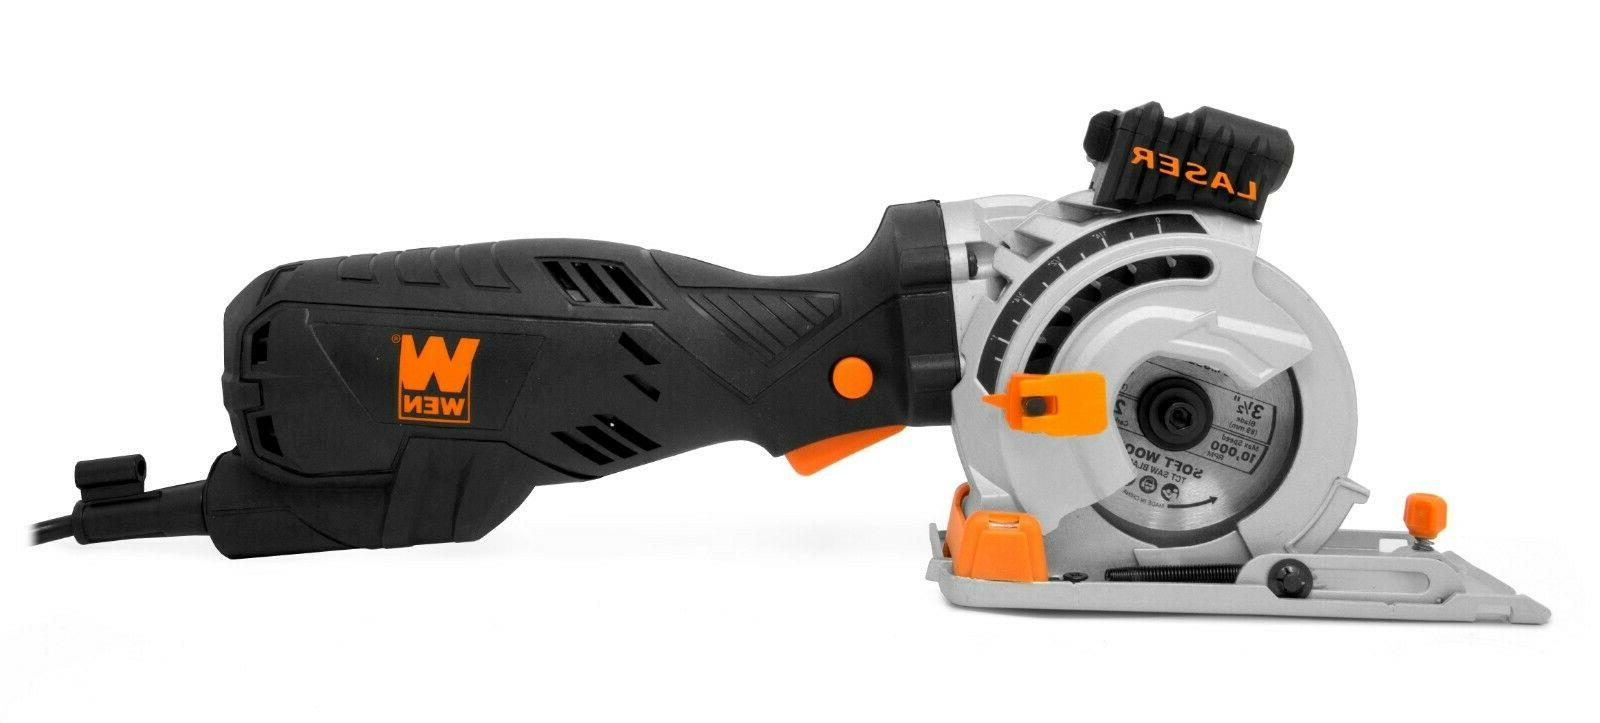 WEN 3620 Plunge Cut Compact Circular Saw and